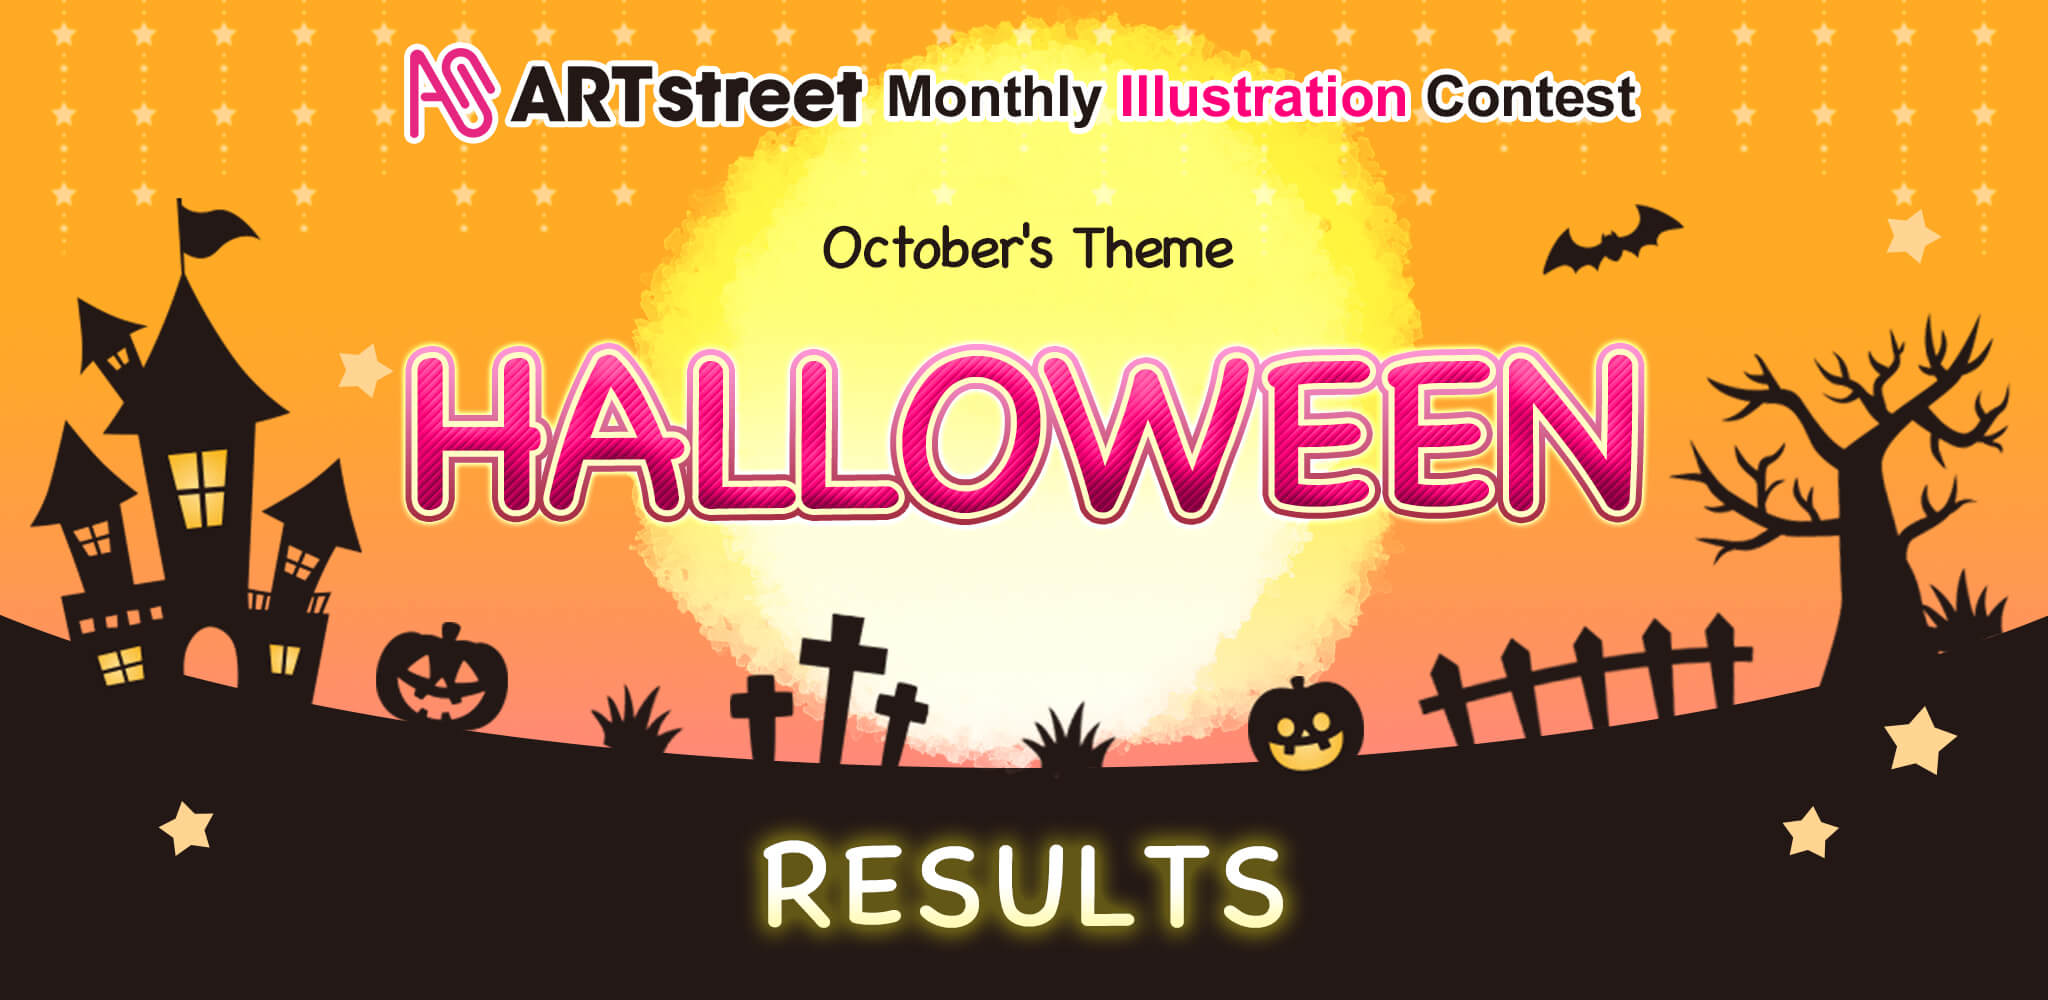 ART street Monthly Illustration Contest 201910 Results | Contest - ART street by MediBang